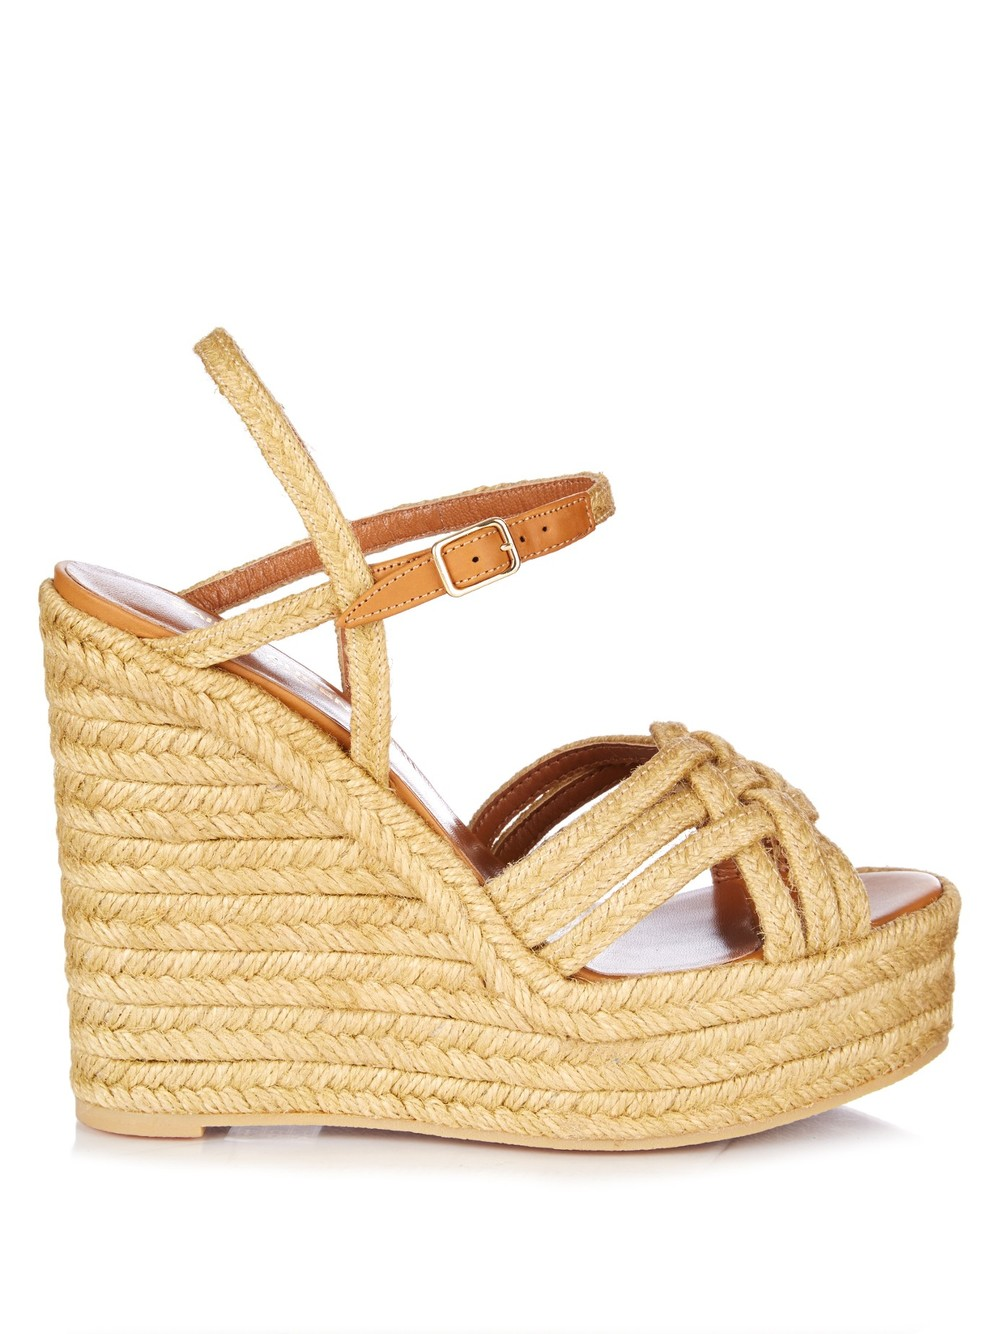 SAINT LAURENT CONGNAC WEDGE SANDALS